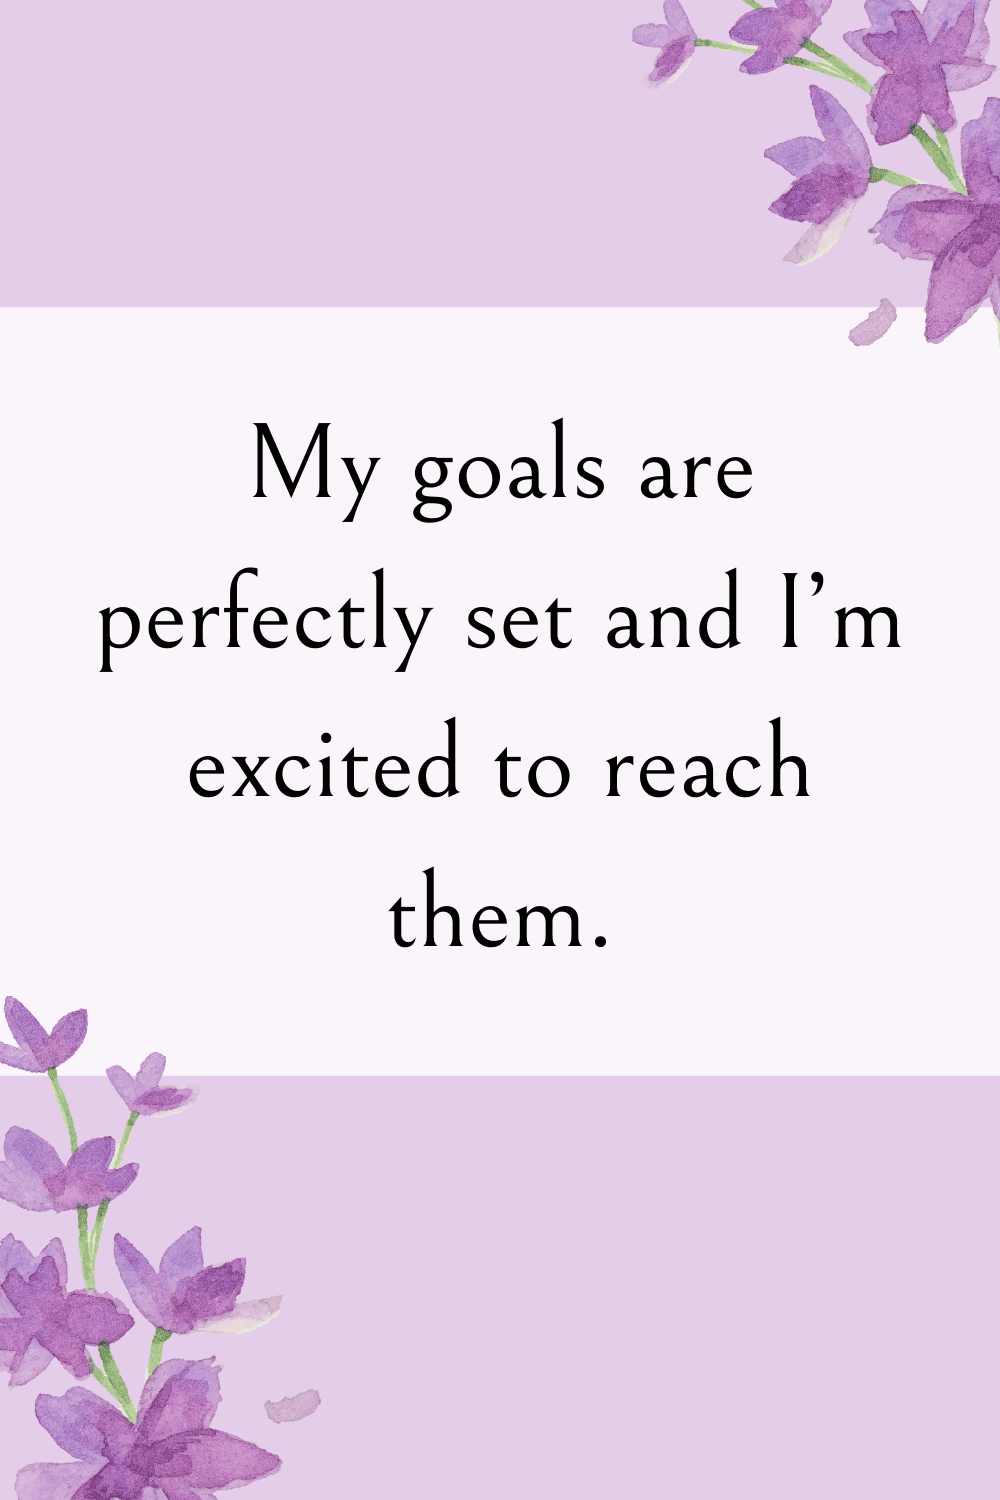 Positive affirmation quotes